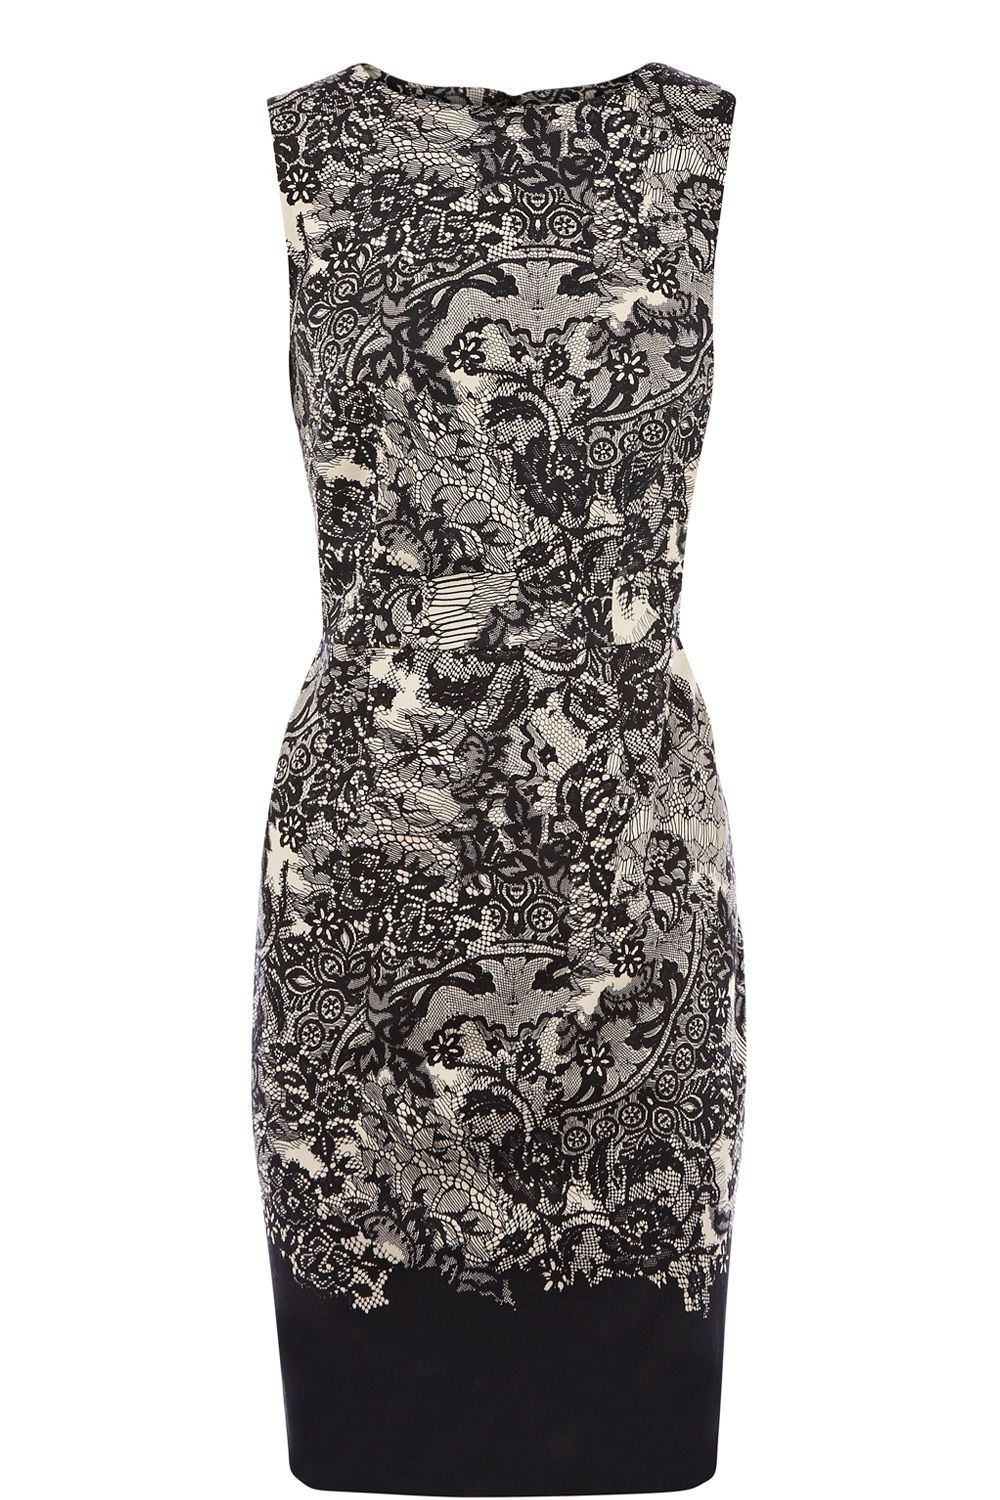 All over lace print dress